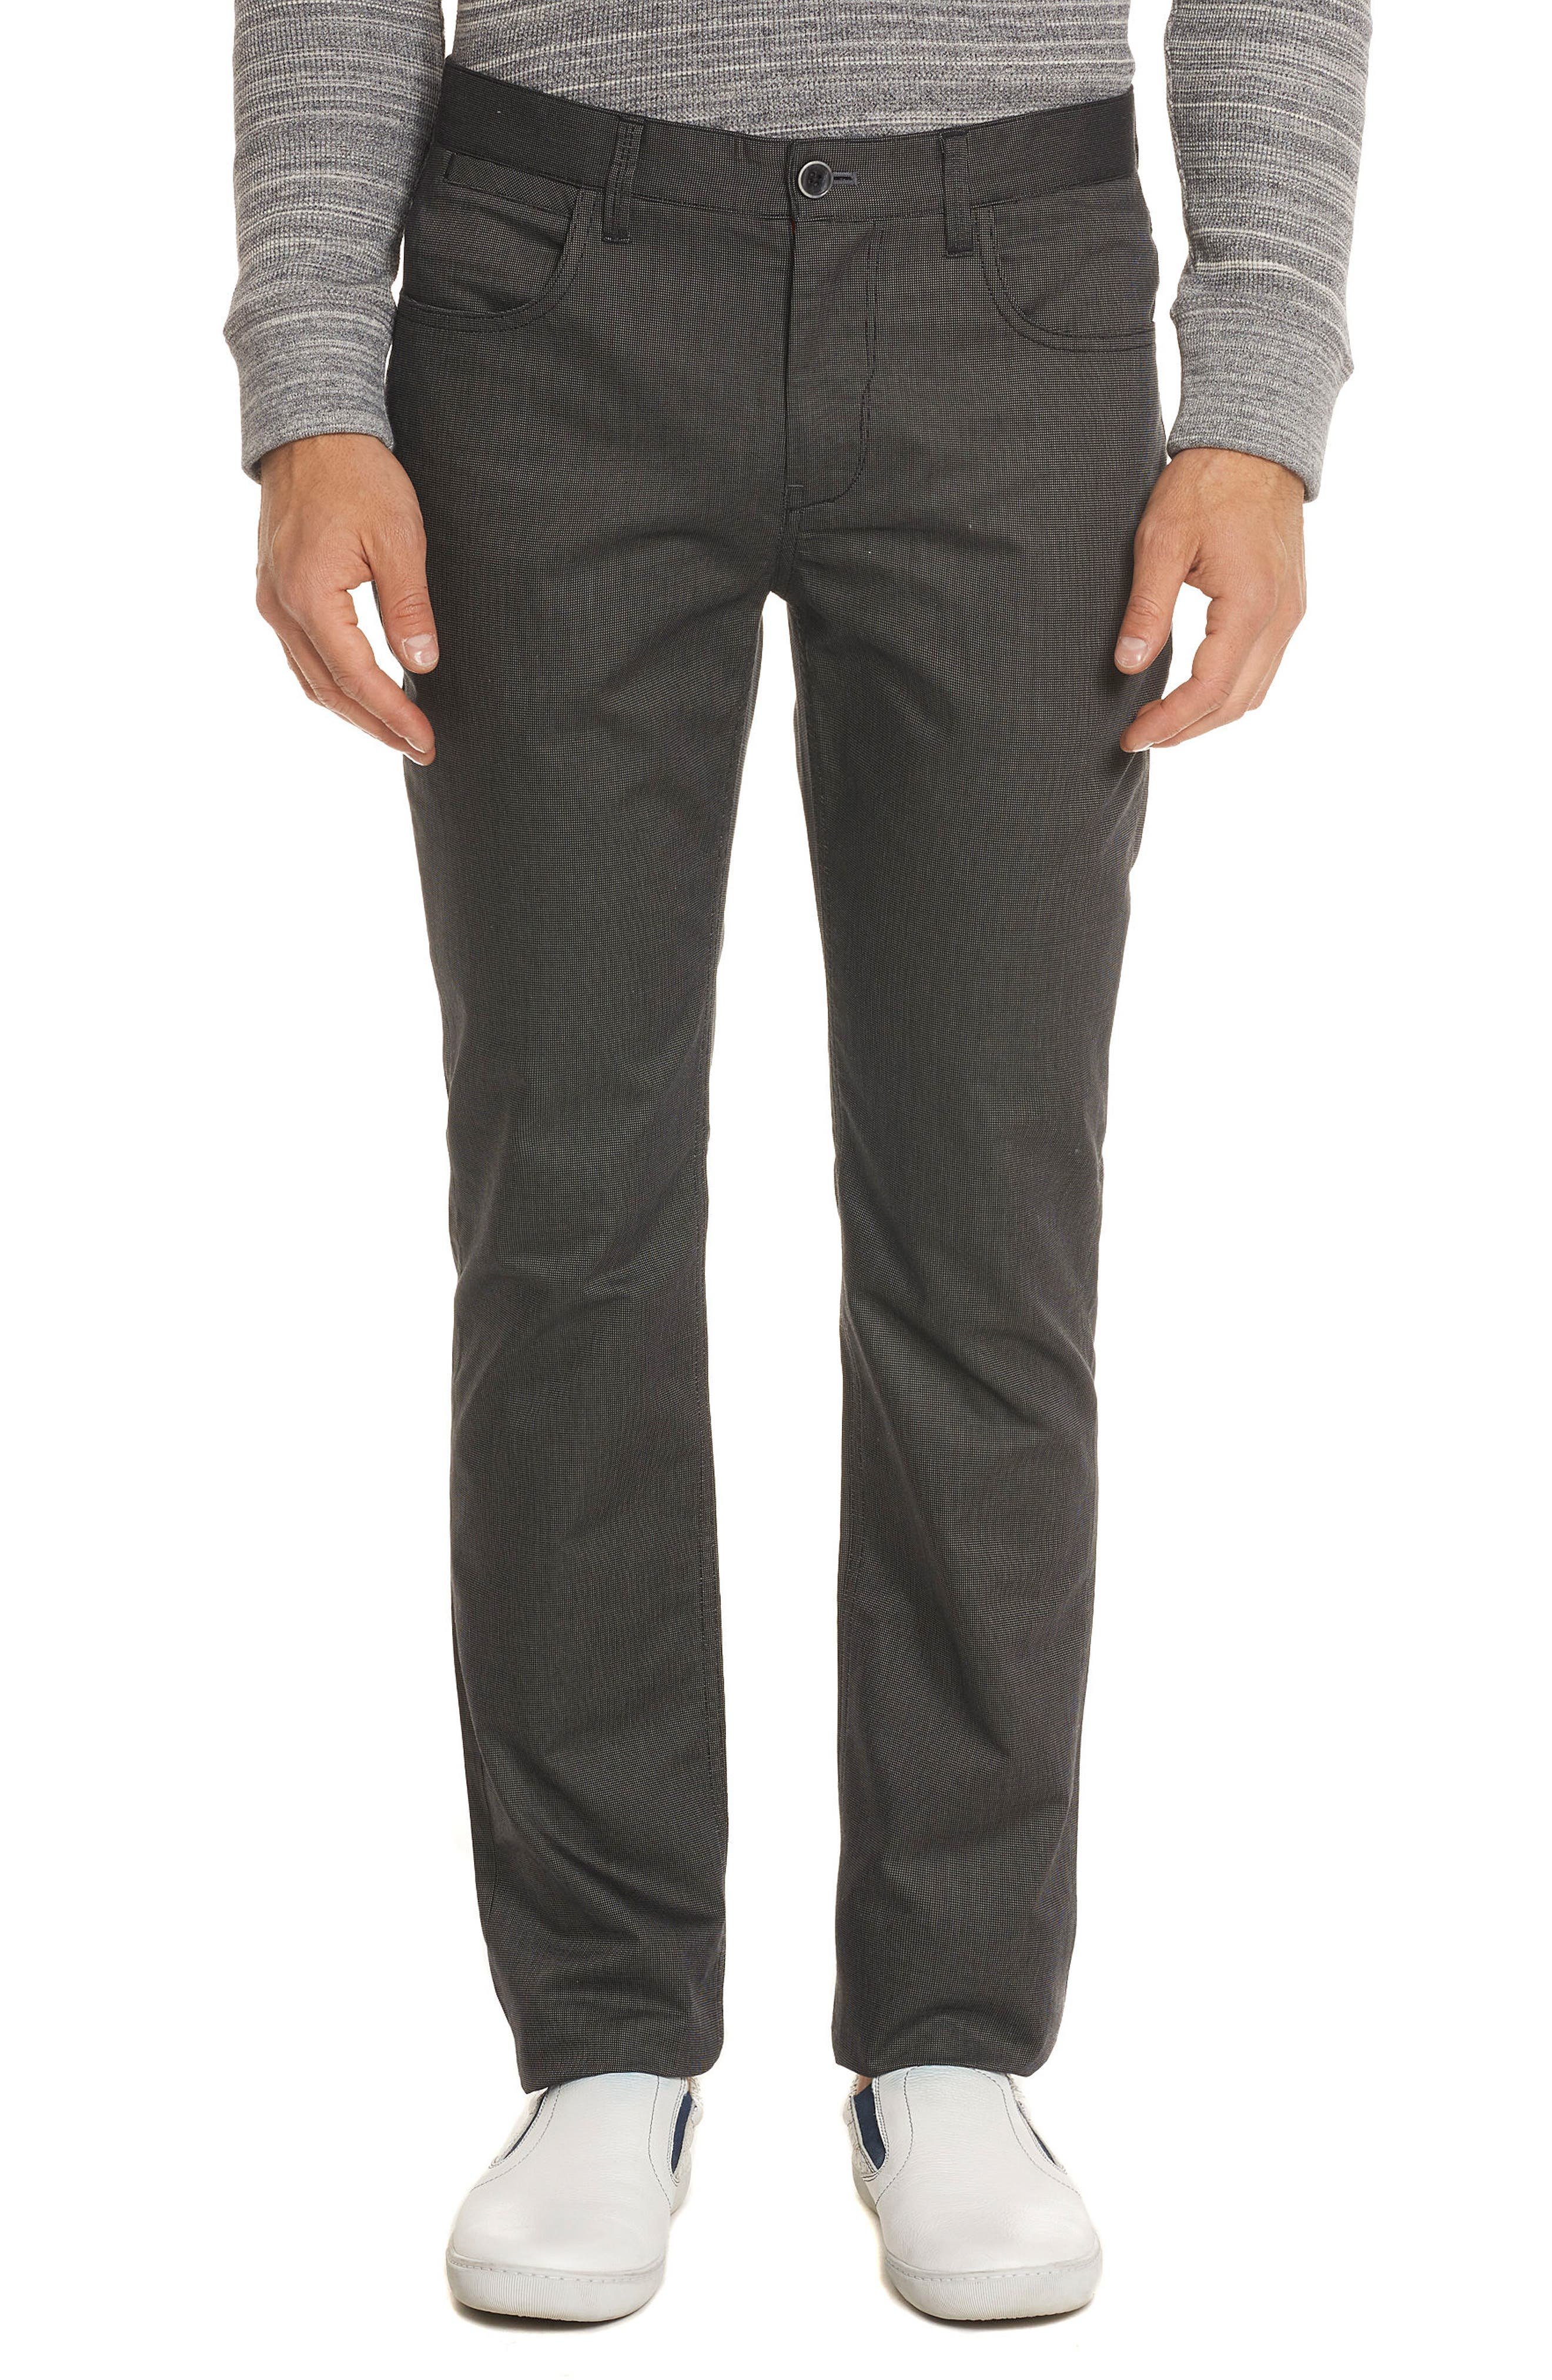 Prio Tailored Fit Pants,                             Main thumbnail 1, color,                             001